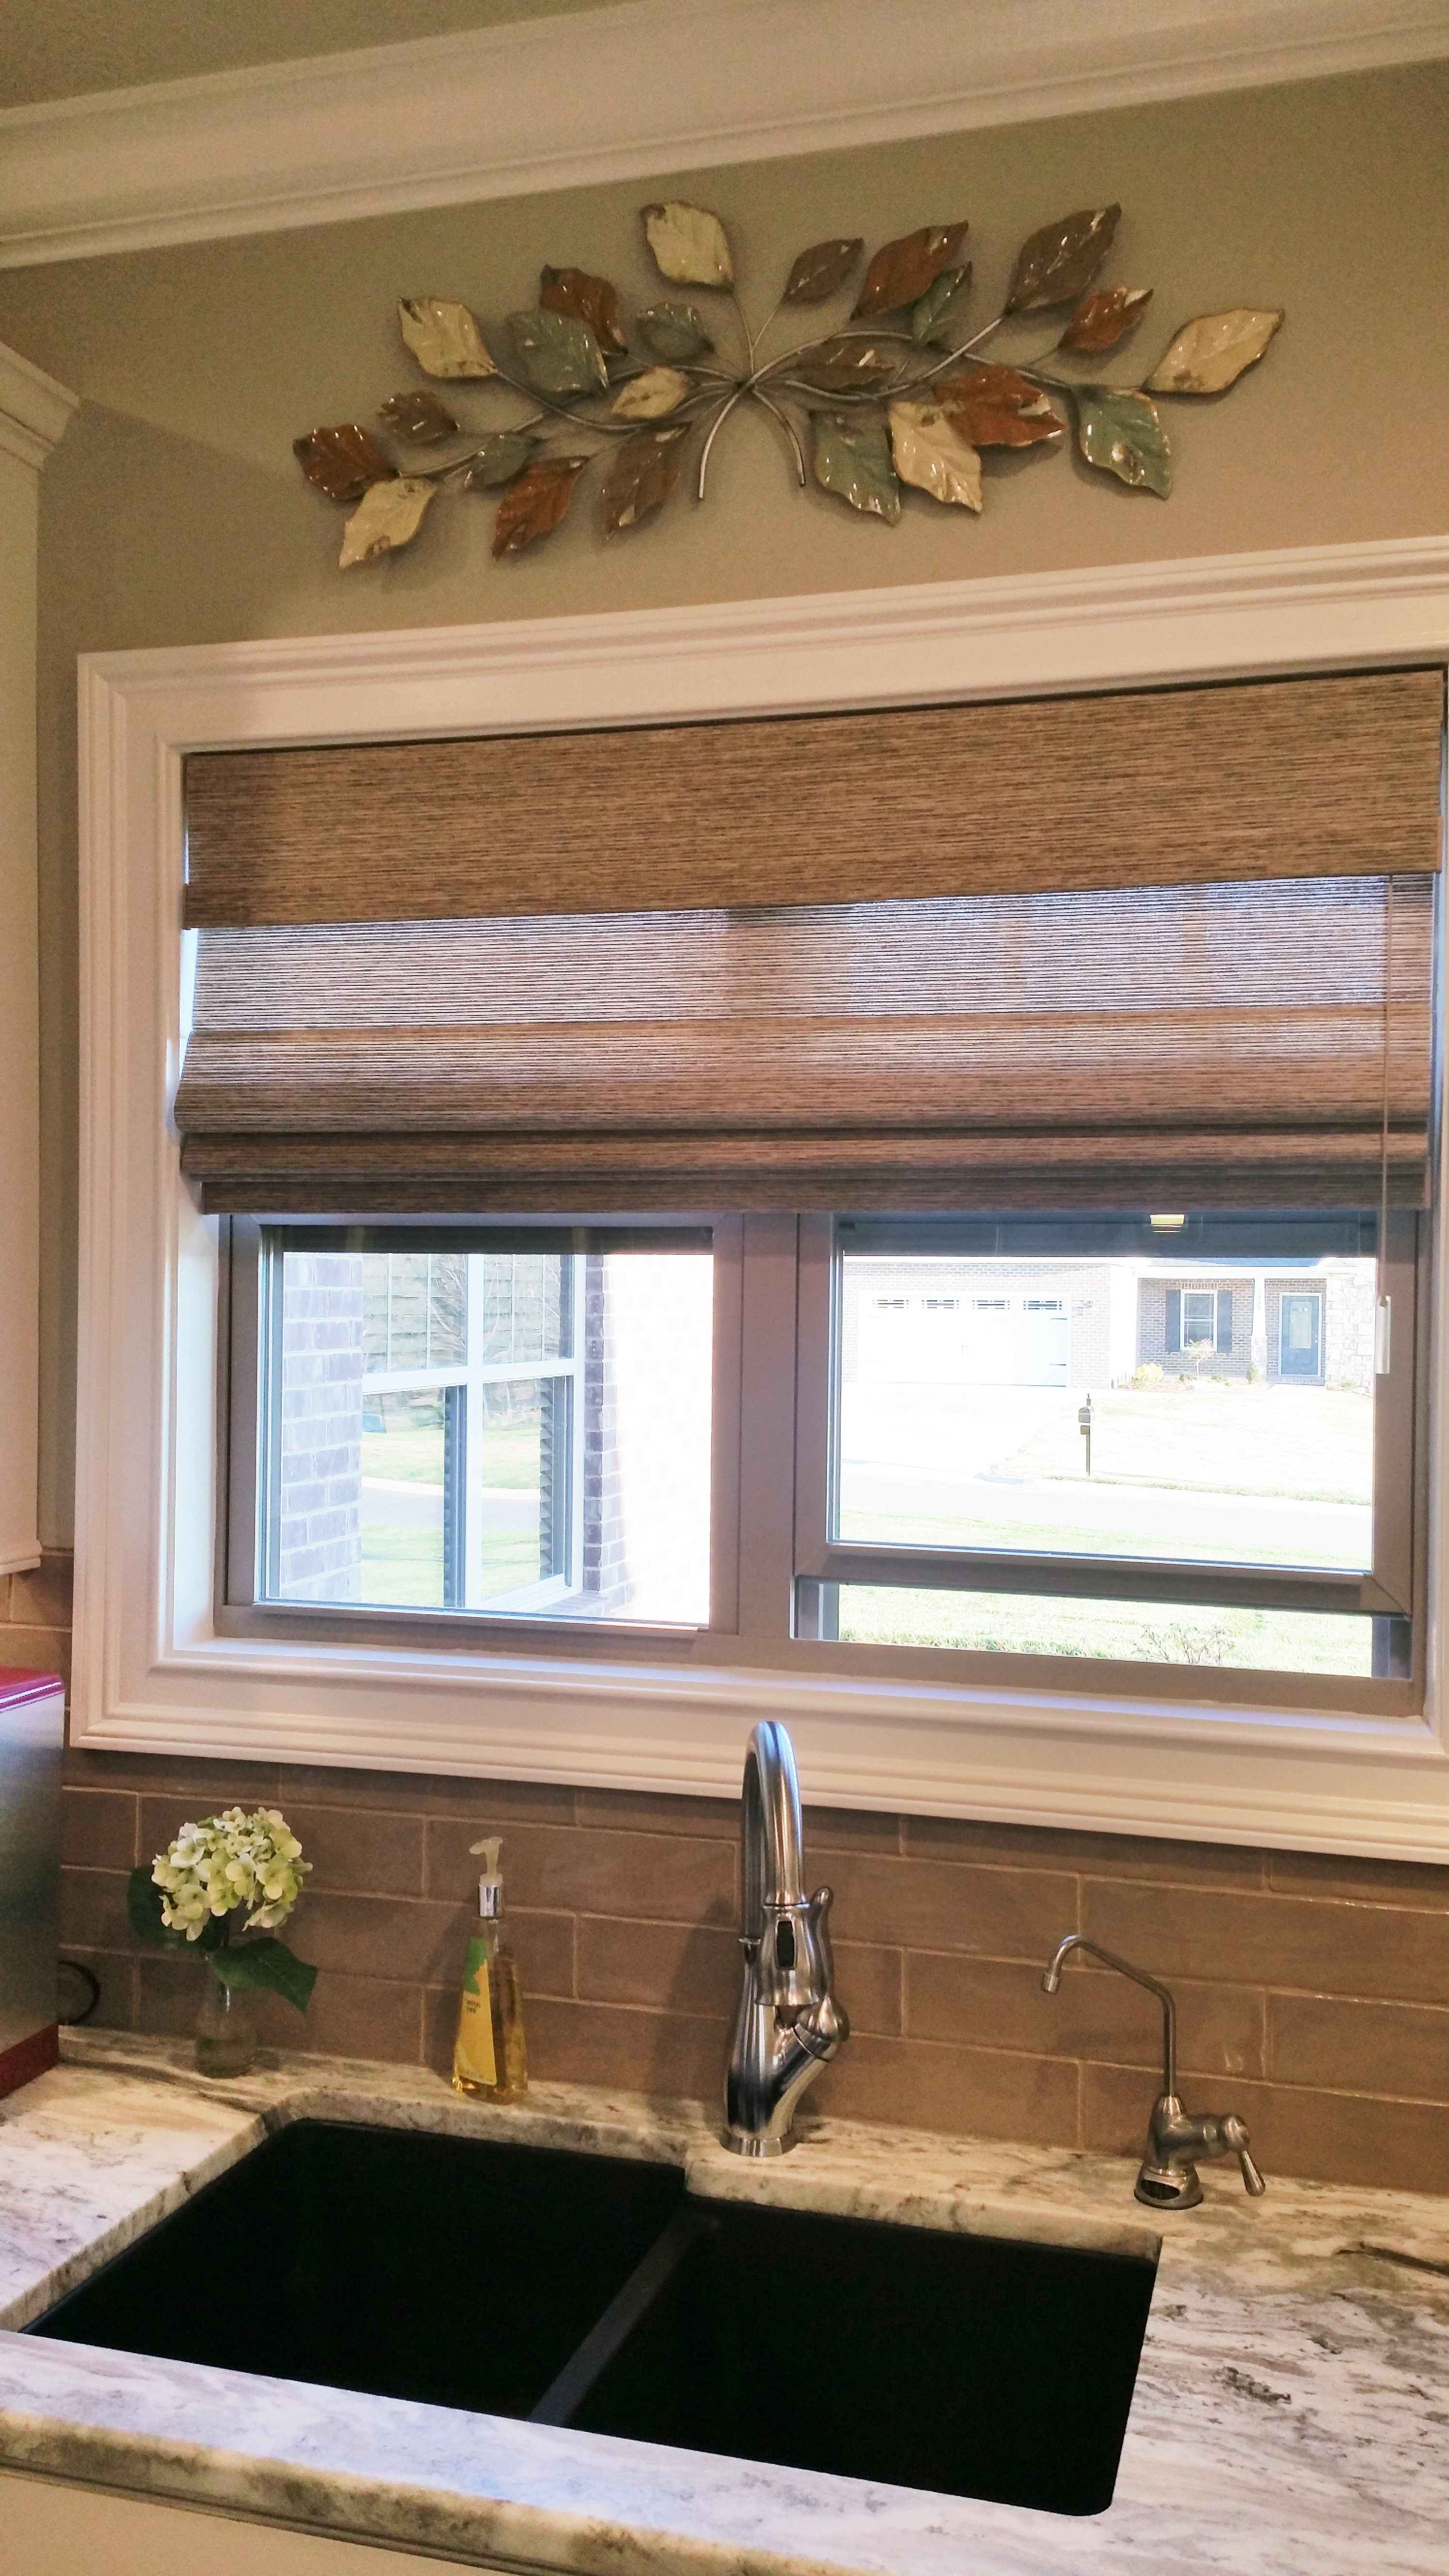 Copper Undermount Sink And Kitchen Window Treatments Kitchens And